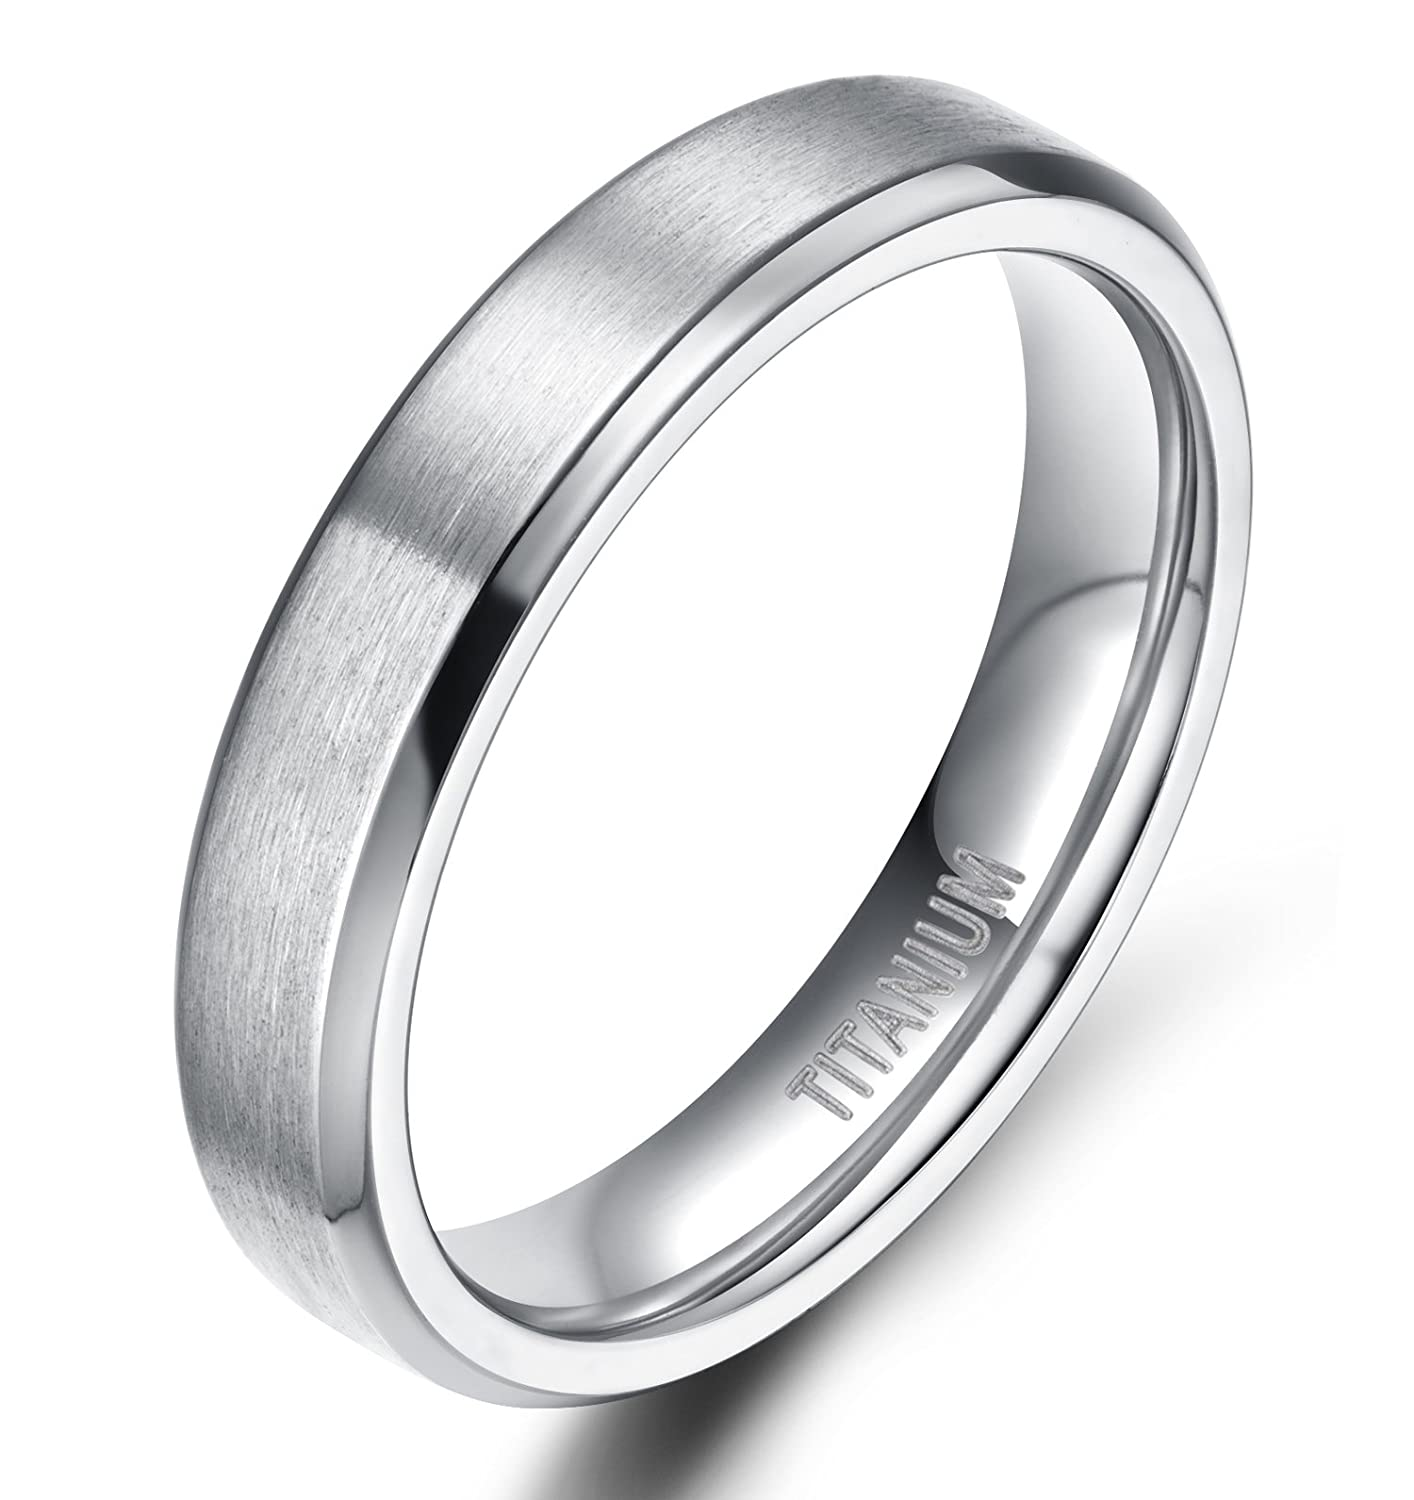 plated what silver sterling magnetic wedding some is jewelry rings why rhodium